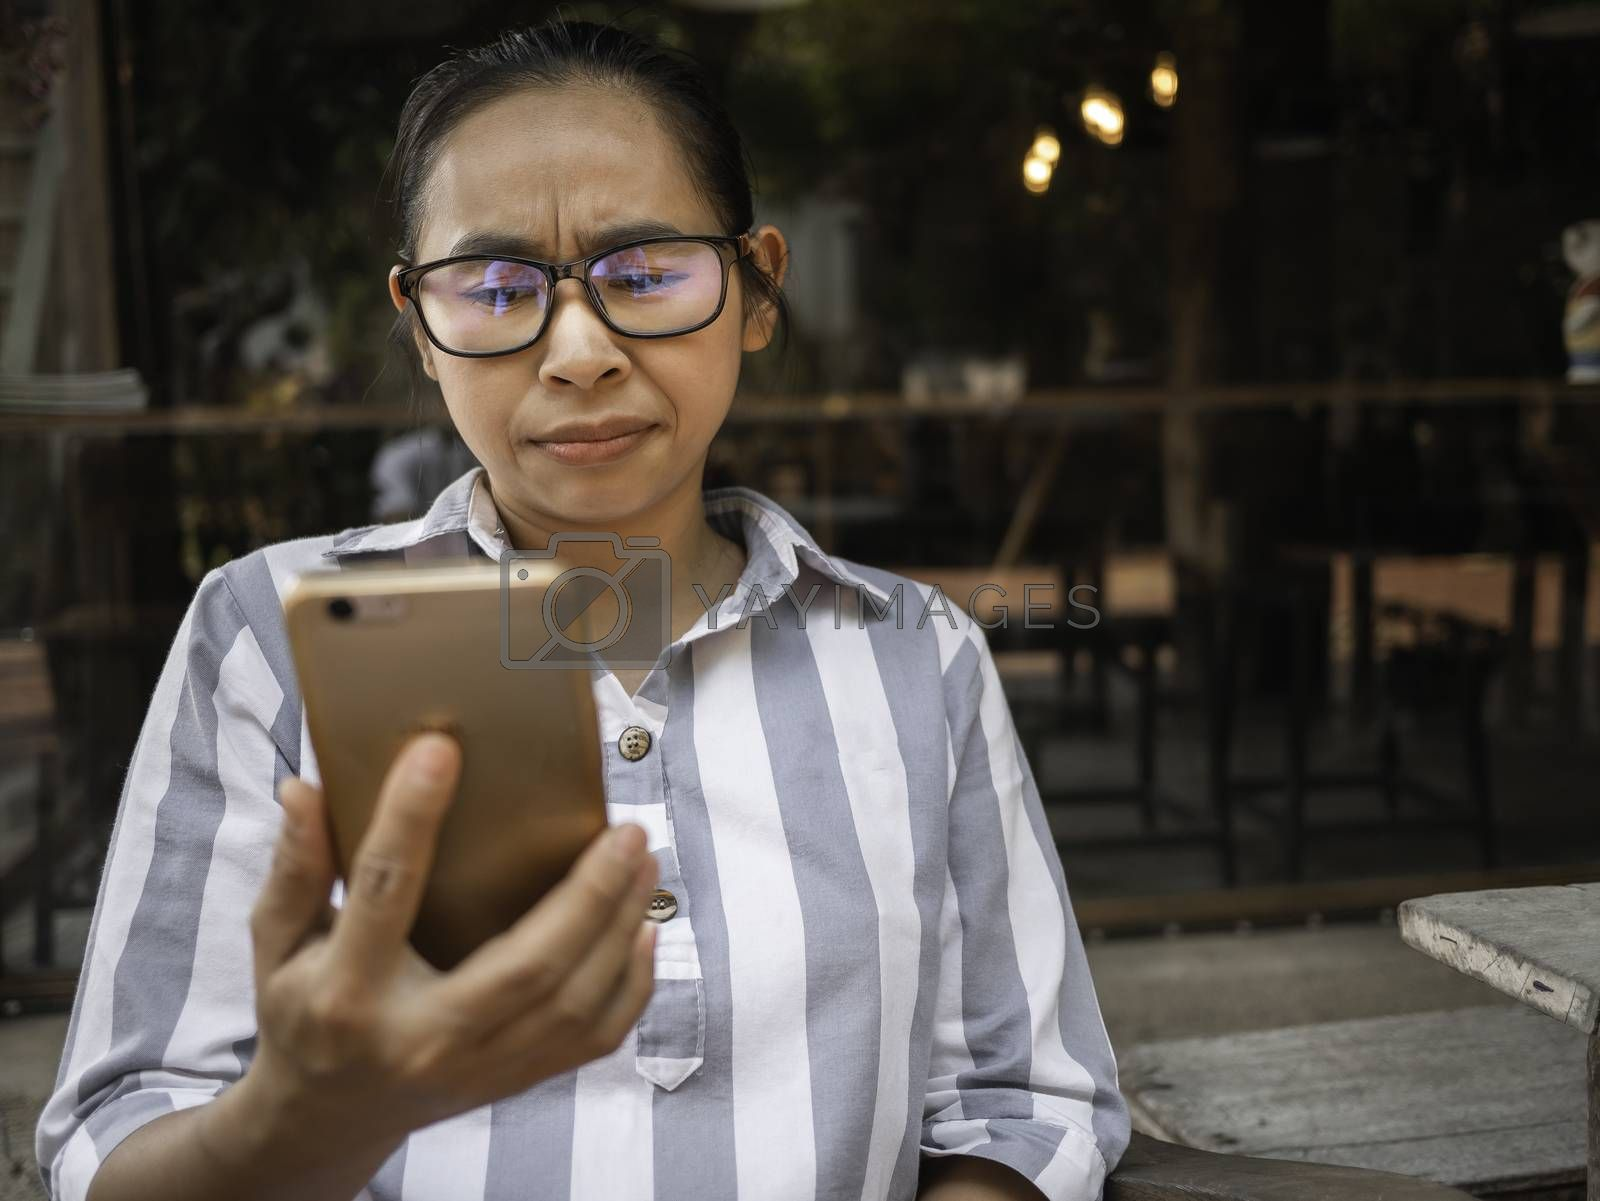 Stressed Asian women sitting on wooden chair with smartphone in coffee cafe. Health and medical concept.